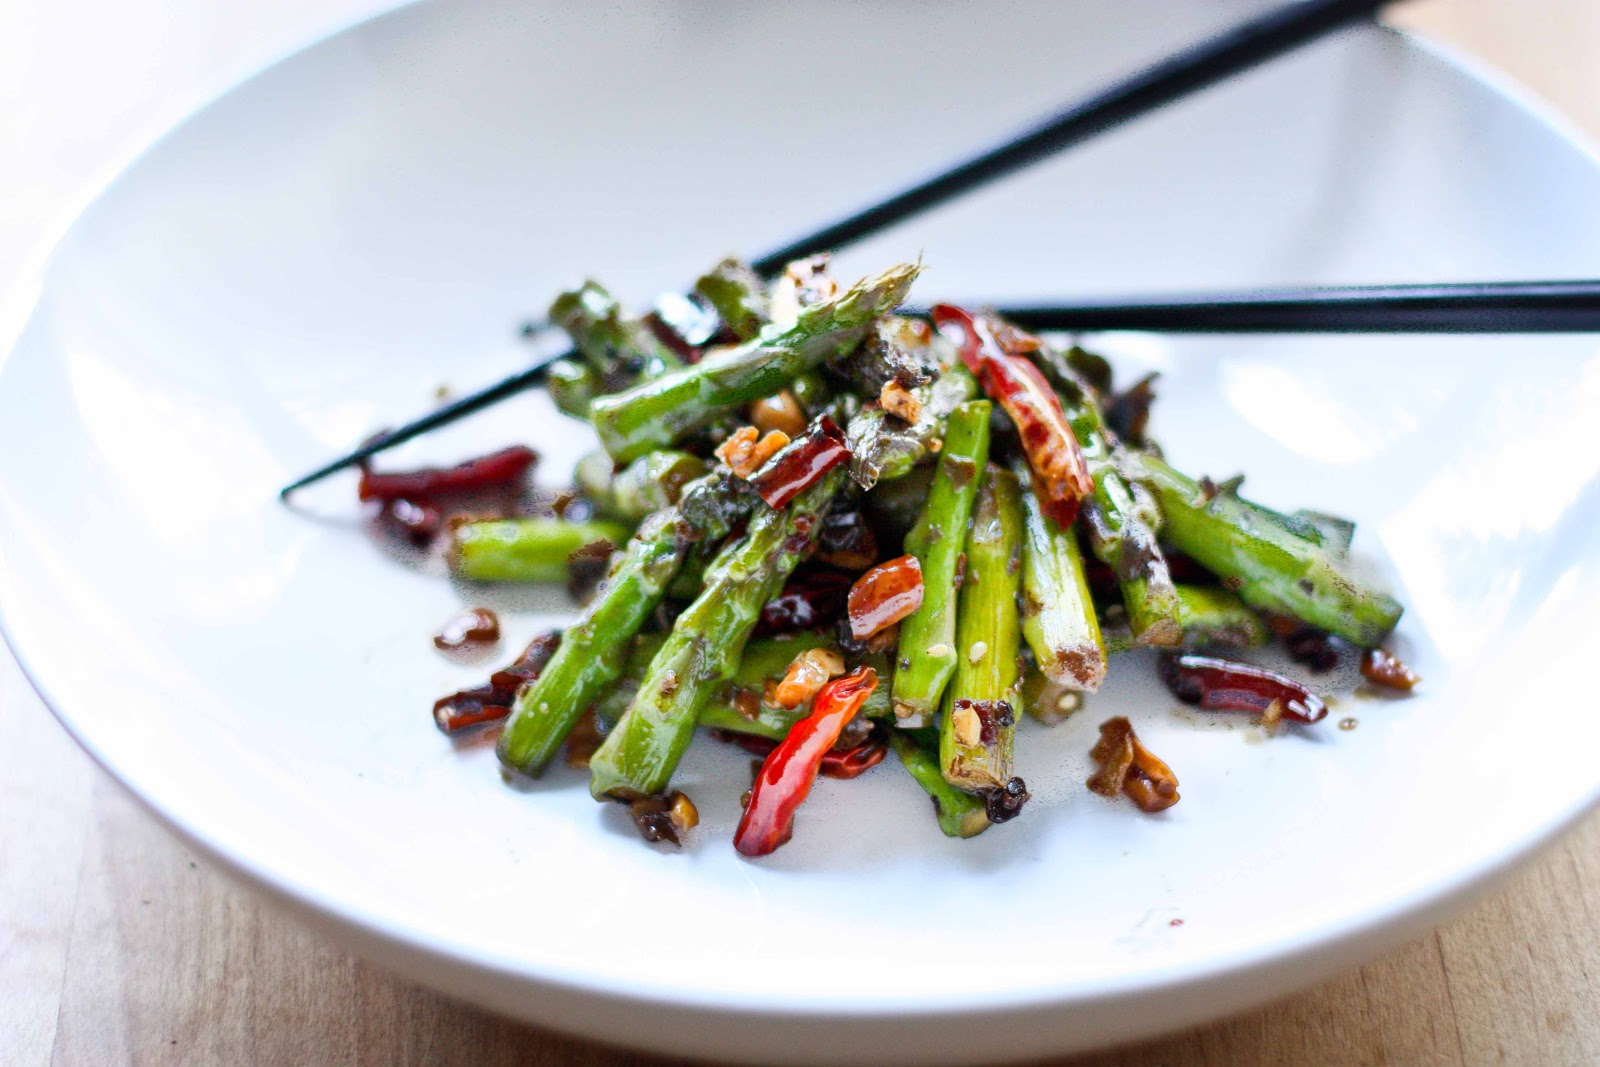 Wok-Seared Asparagus with Chili, Garlic, Black bean Sauce